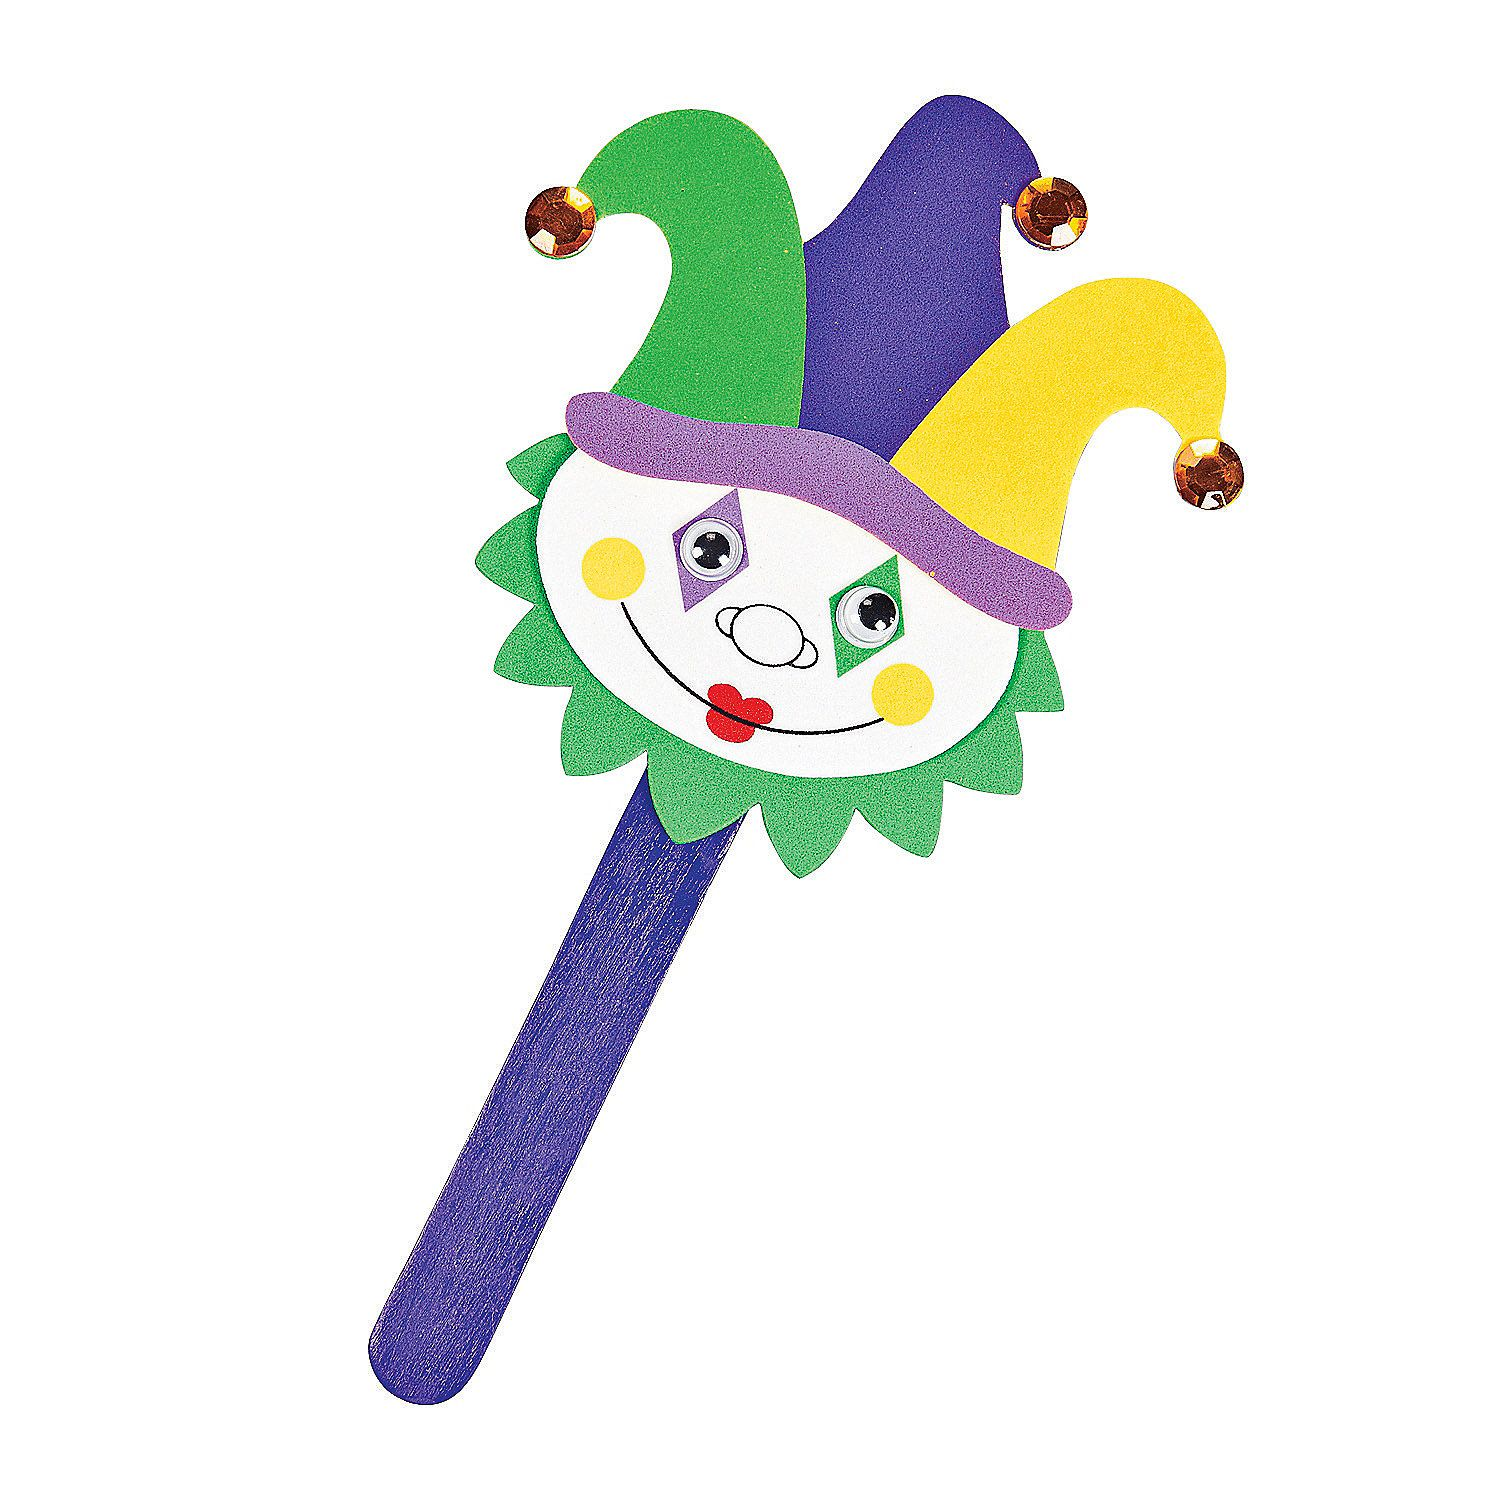 Mardi Gras Jester Puppets Craft Kit